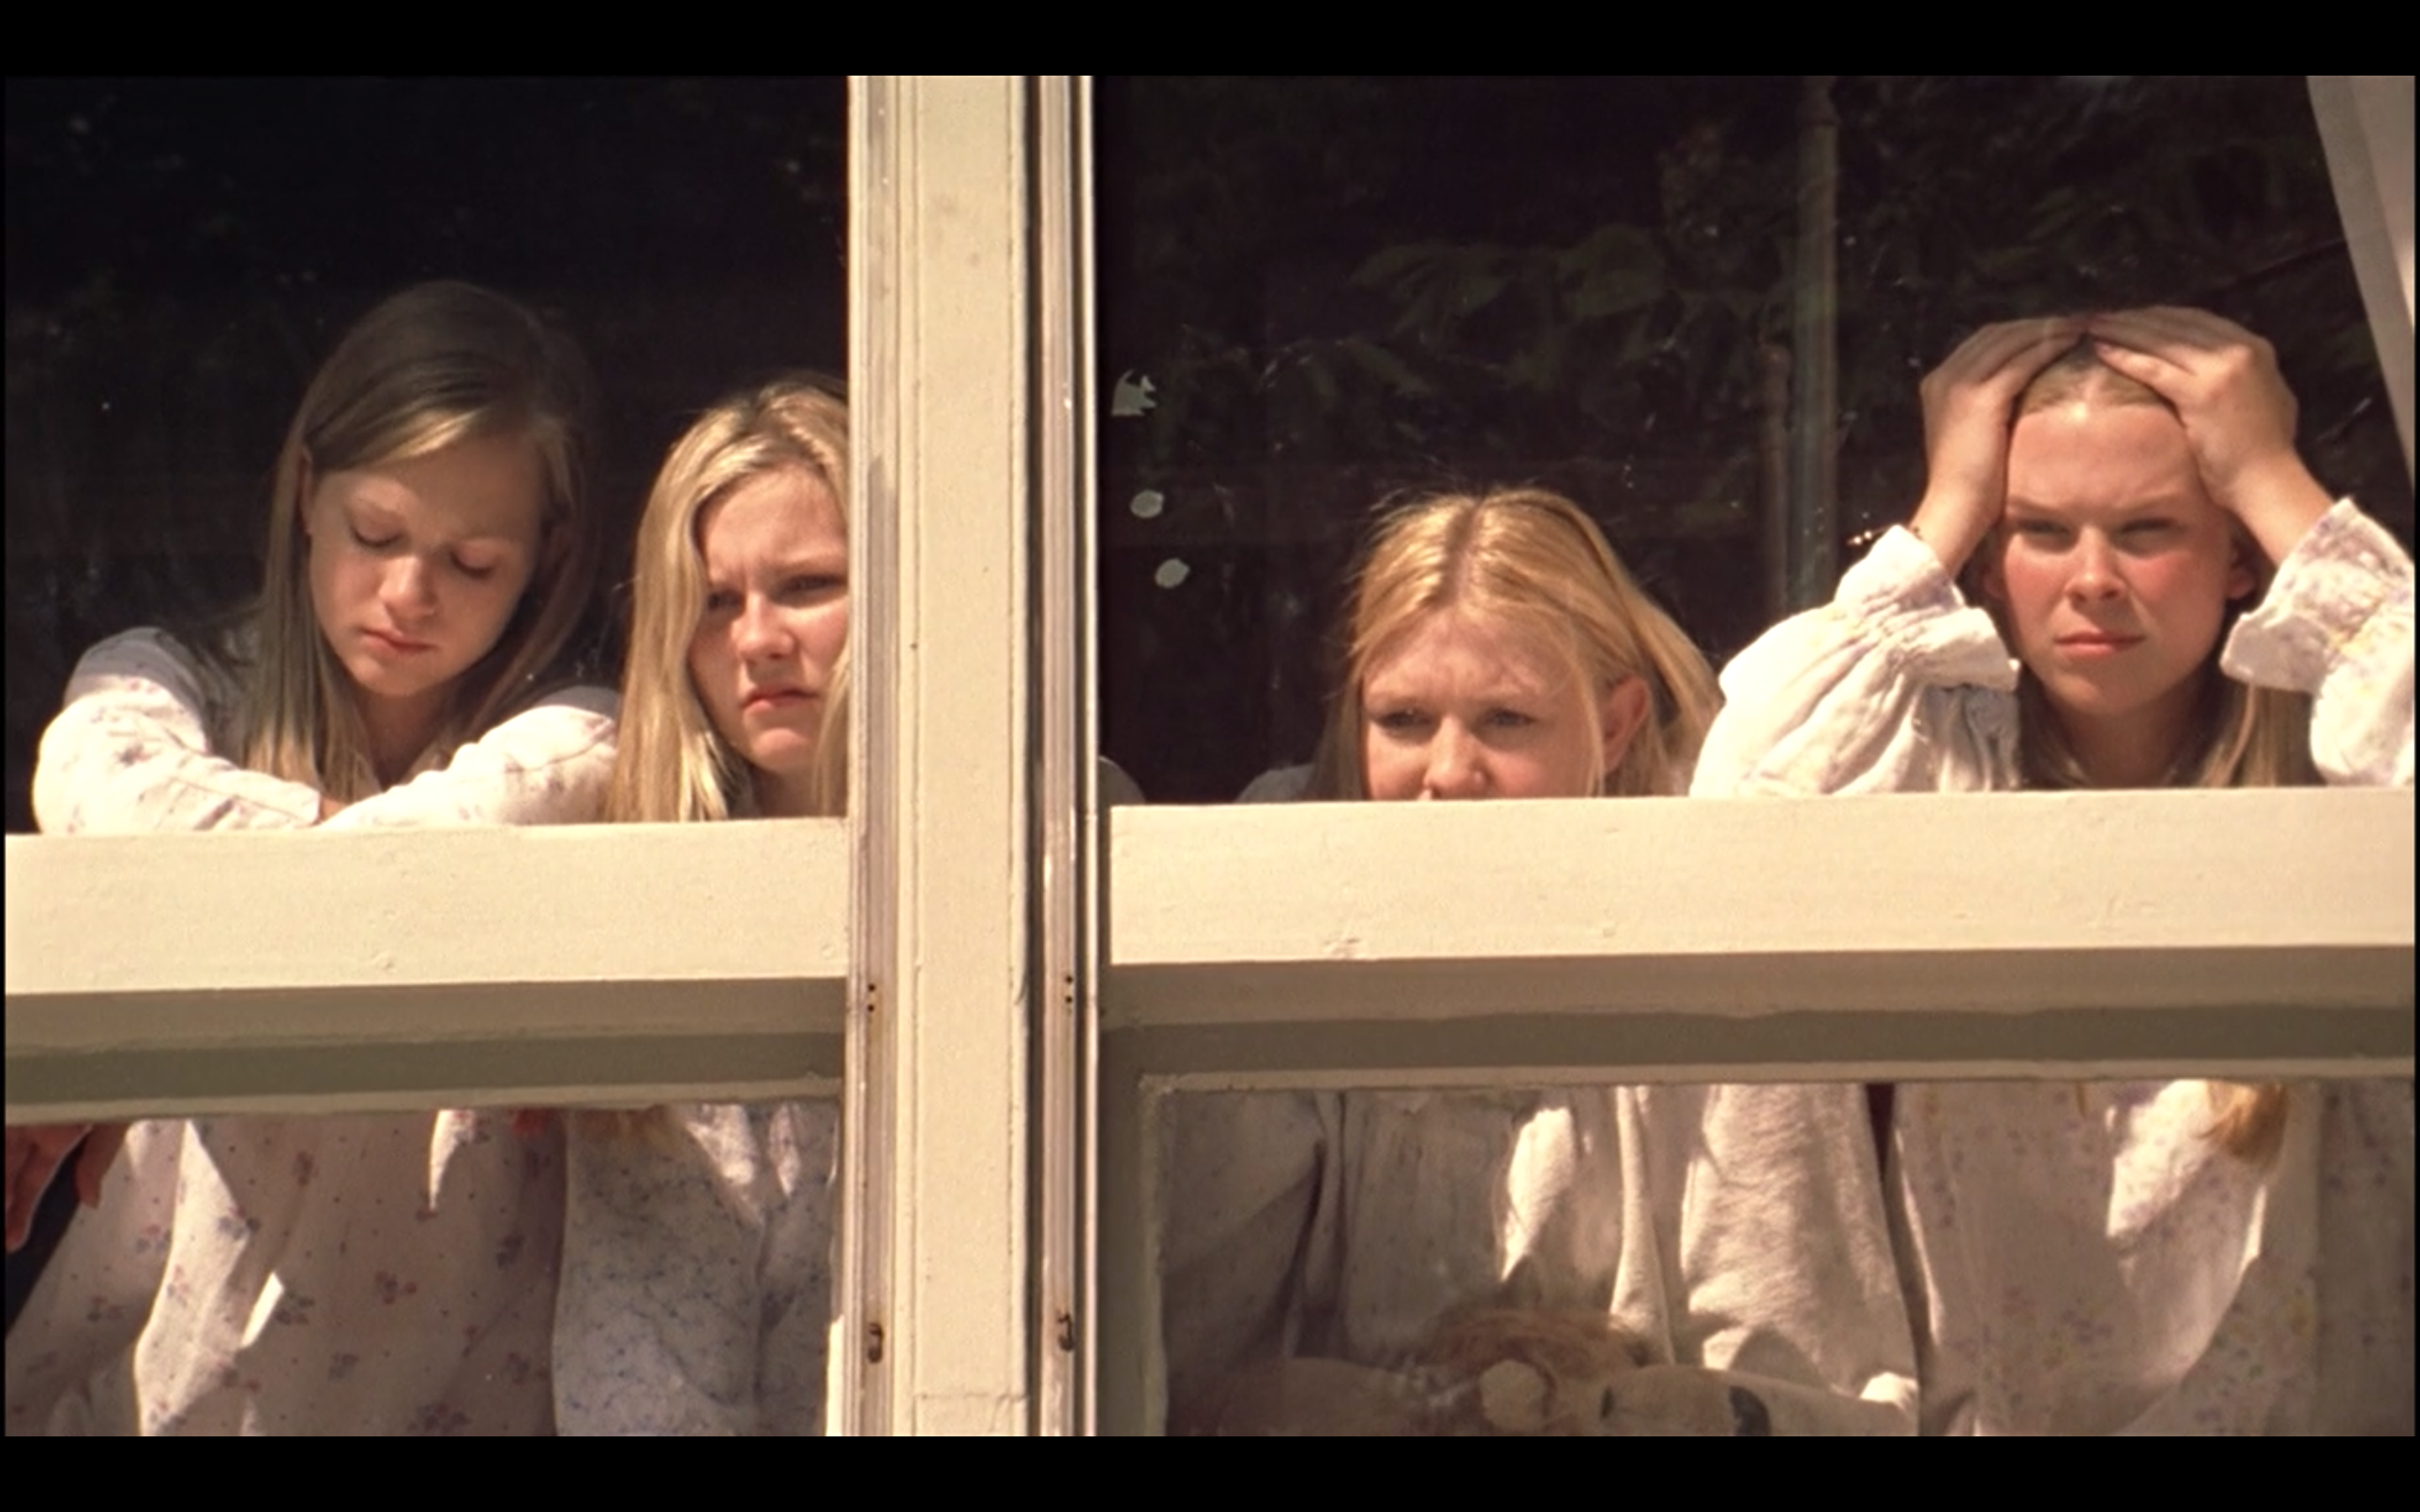 Still from the movie of four girls looking out of a window